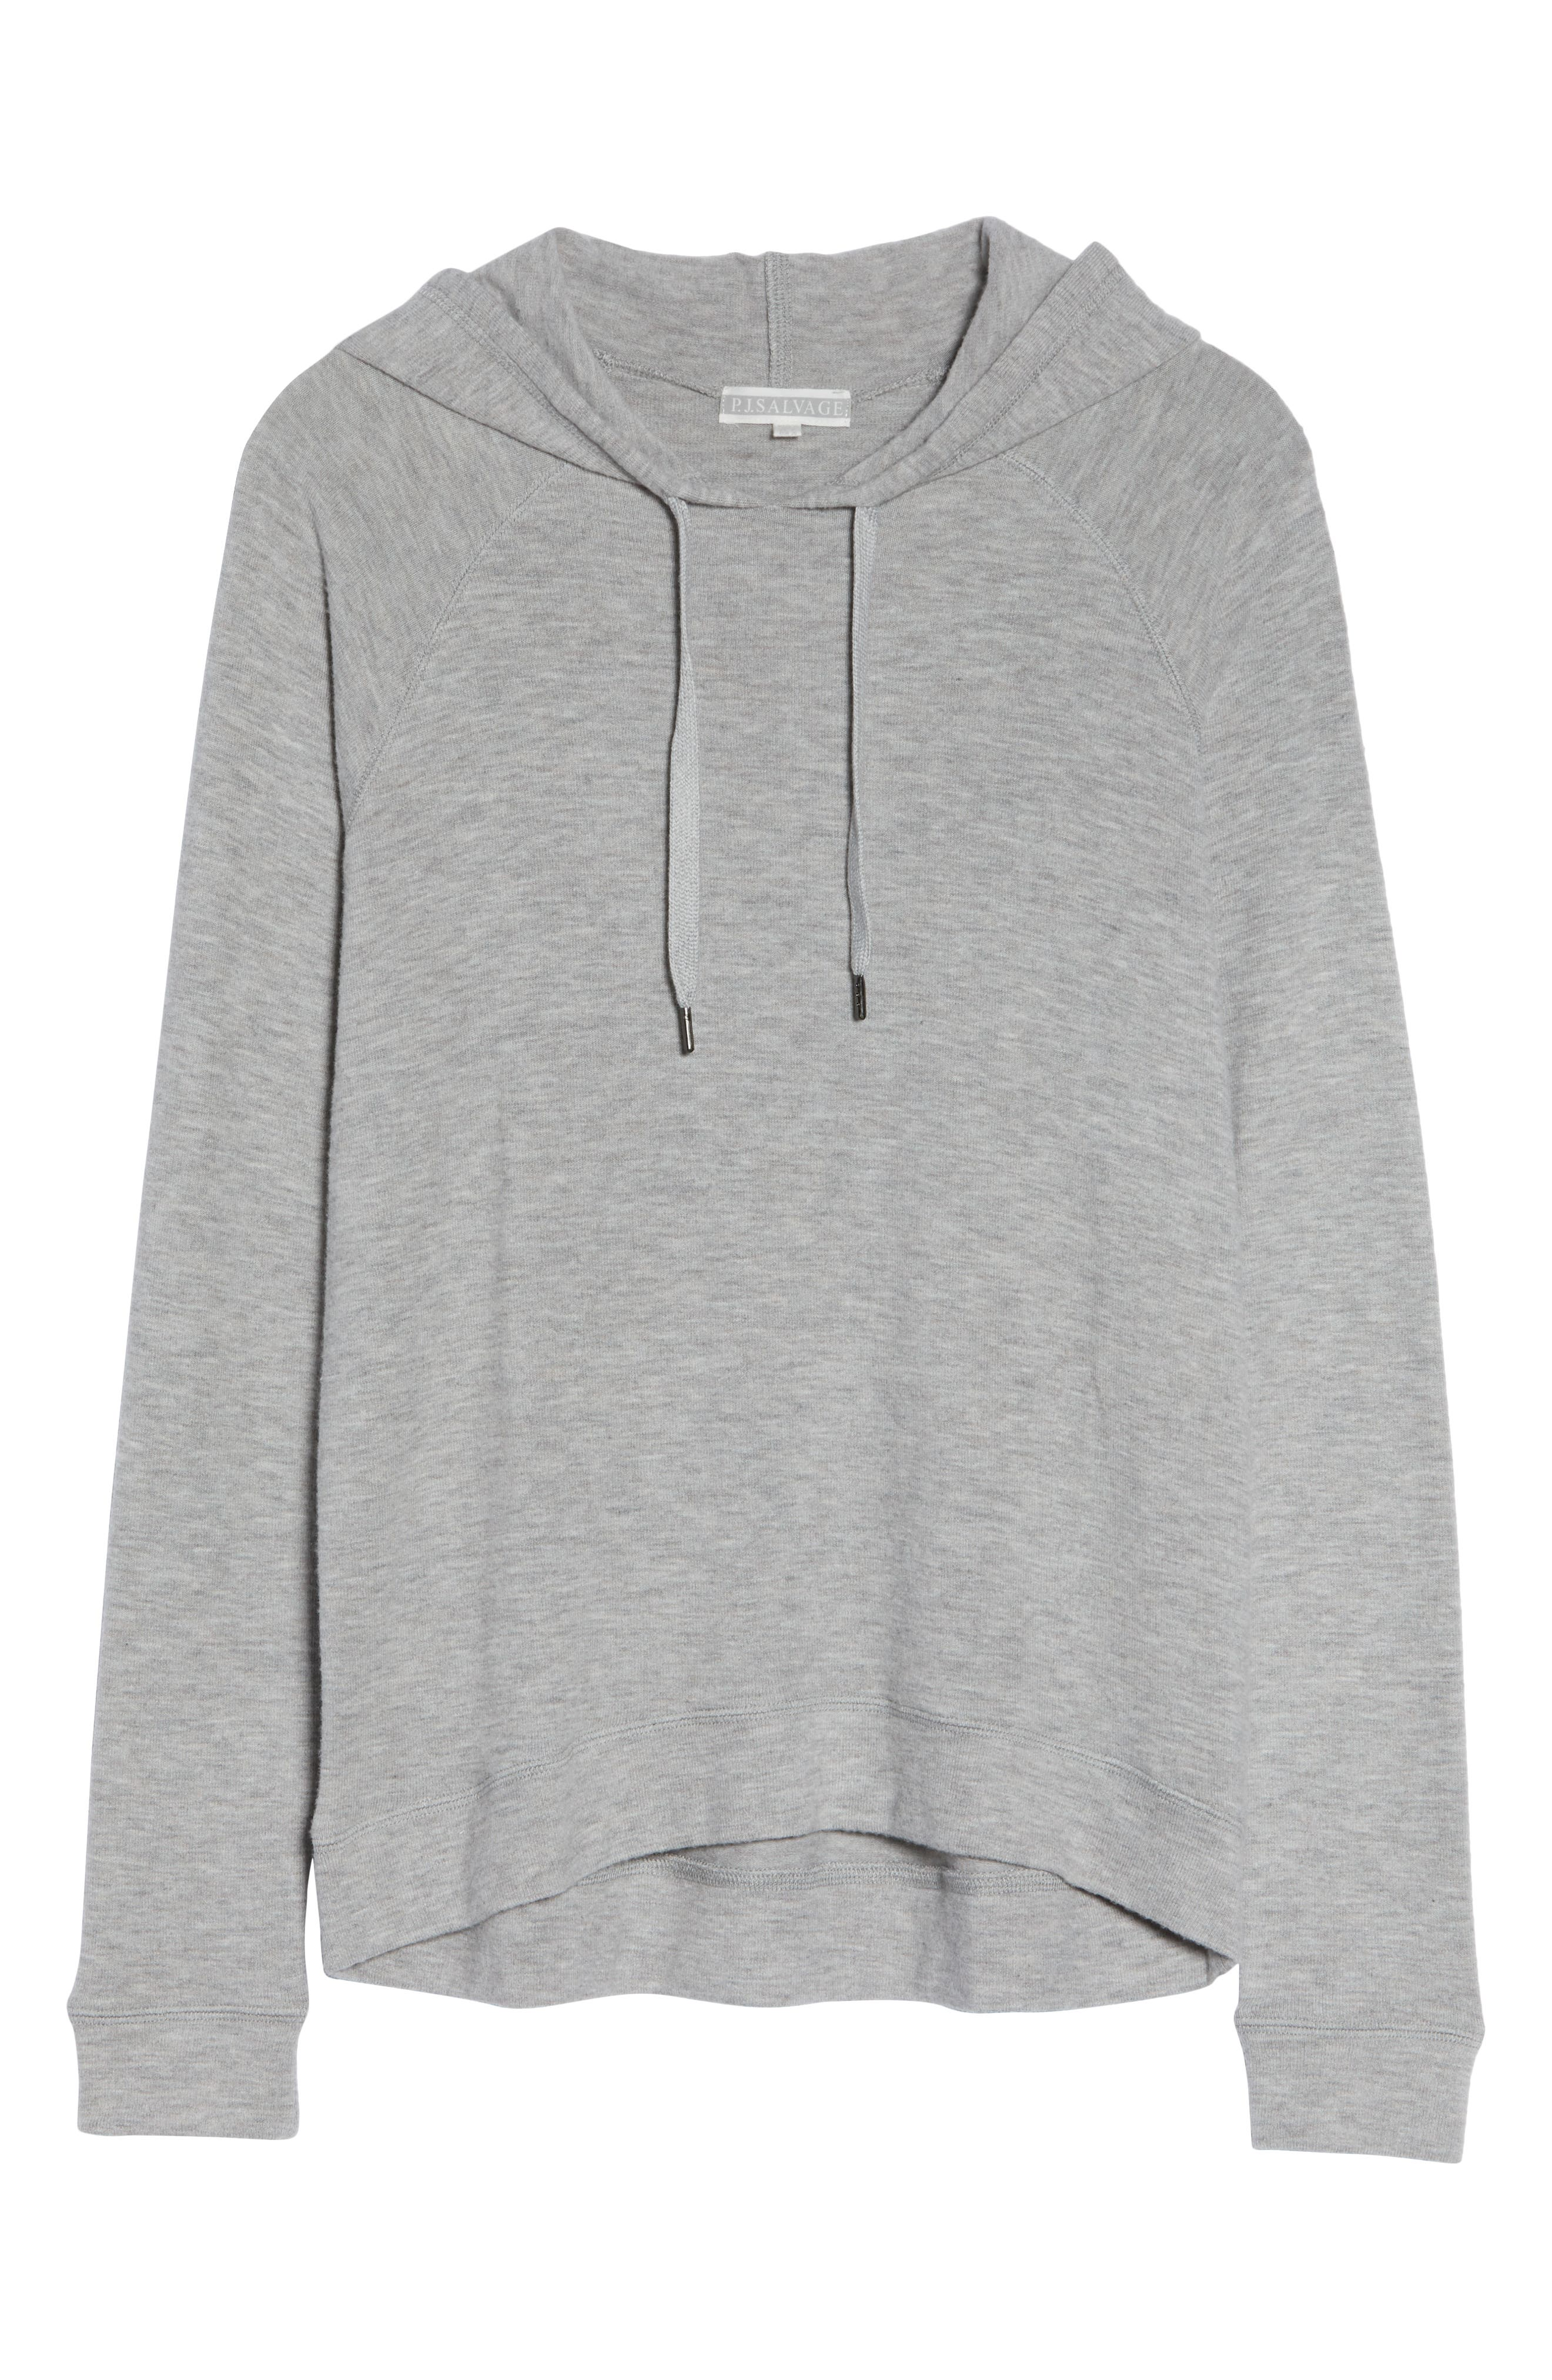 Pullover Hoodie,                             Main thumbnail 1, color,                             H GREY